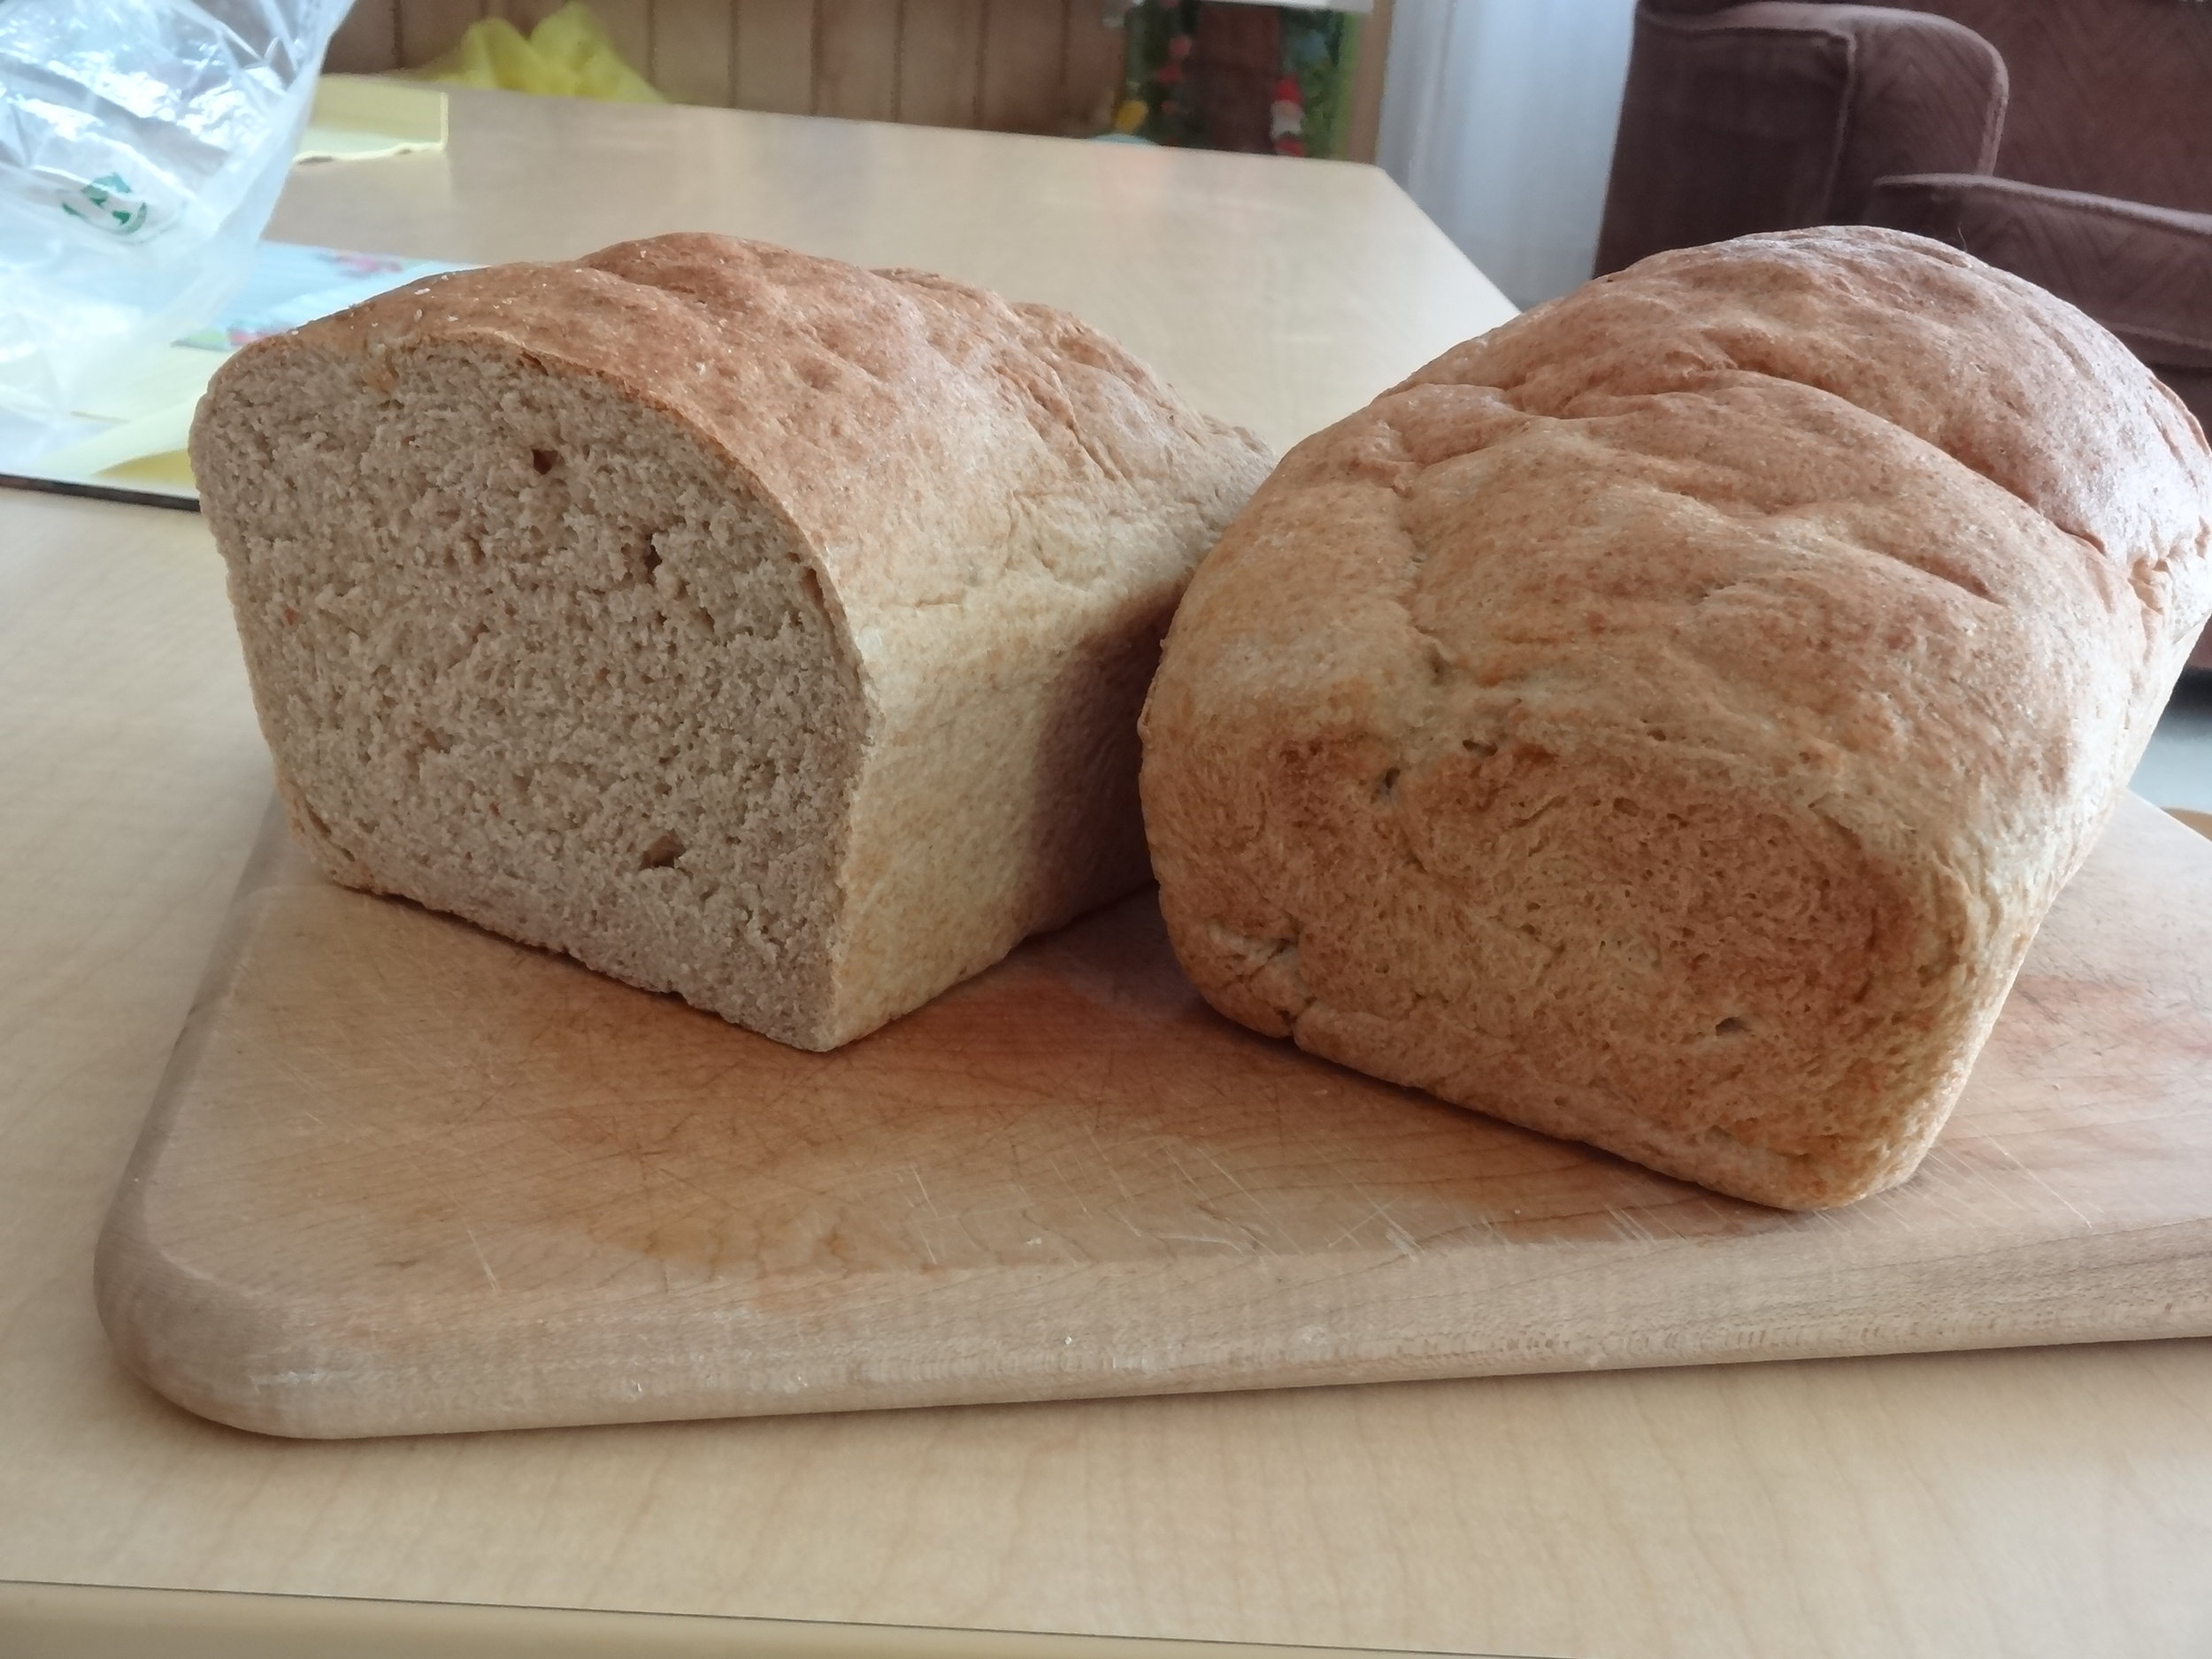 Delicious home baked bread